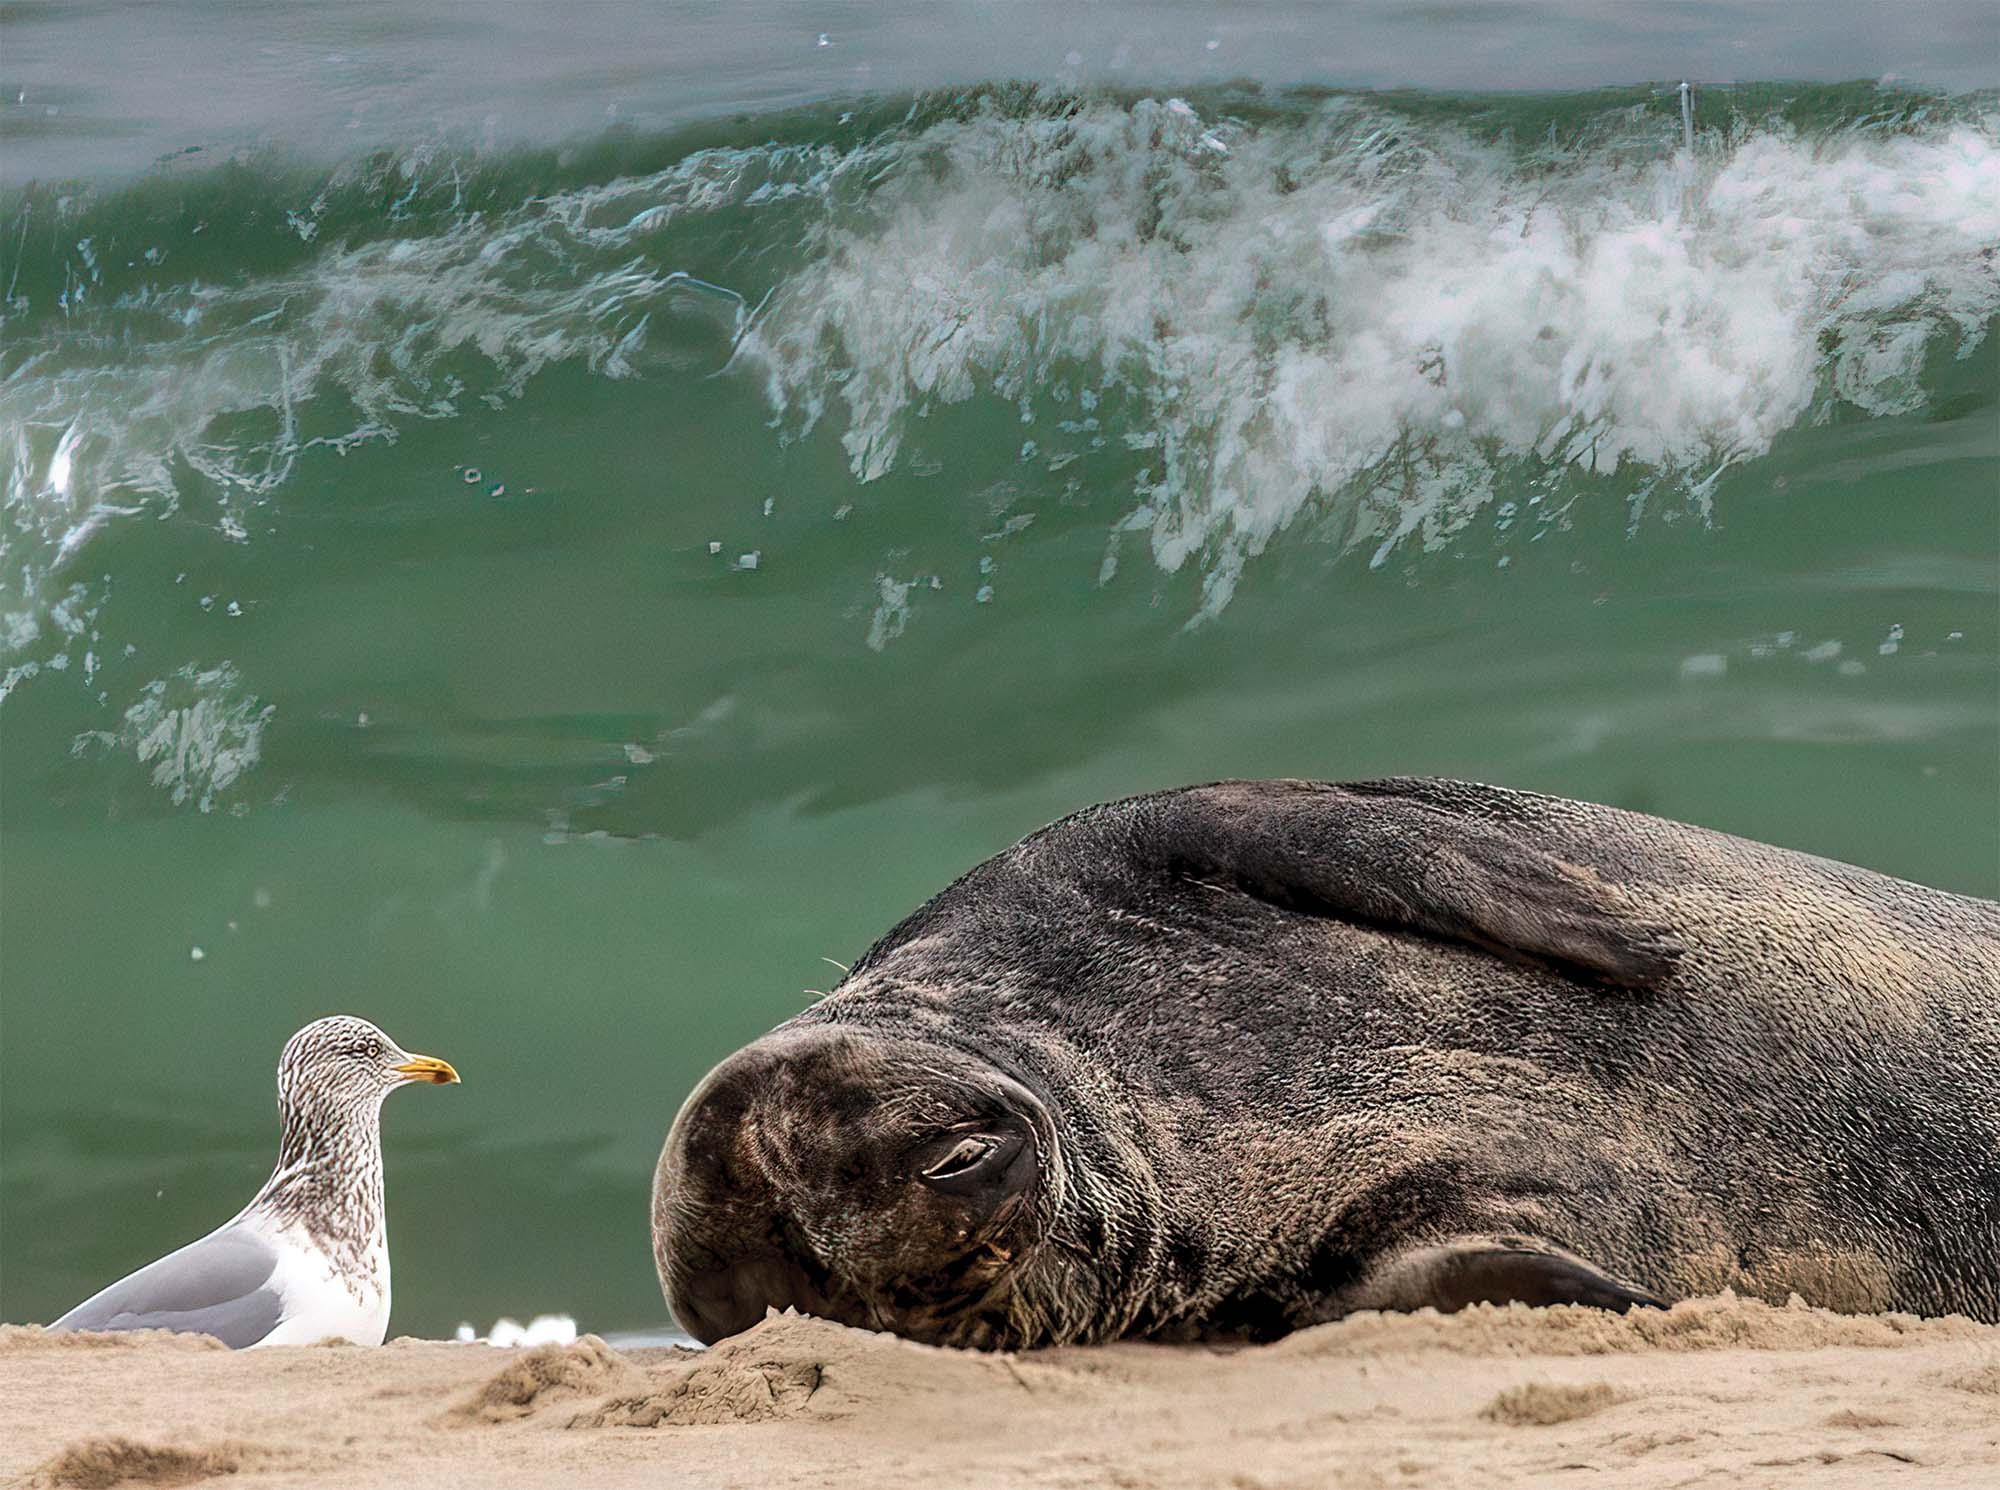 Levin's research on marine species has taken him to the remotest spots on the planet, but also to places like Monomoy National Wildlife Refuge on Cape Cod, where this grey seal was having a siesta.